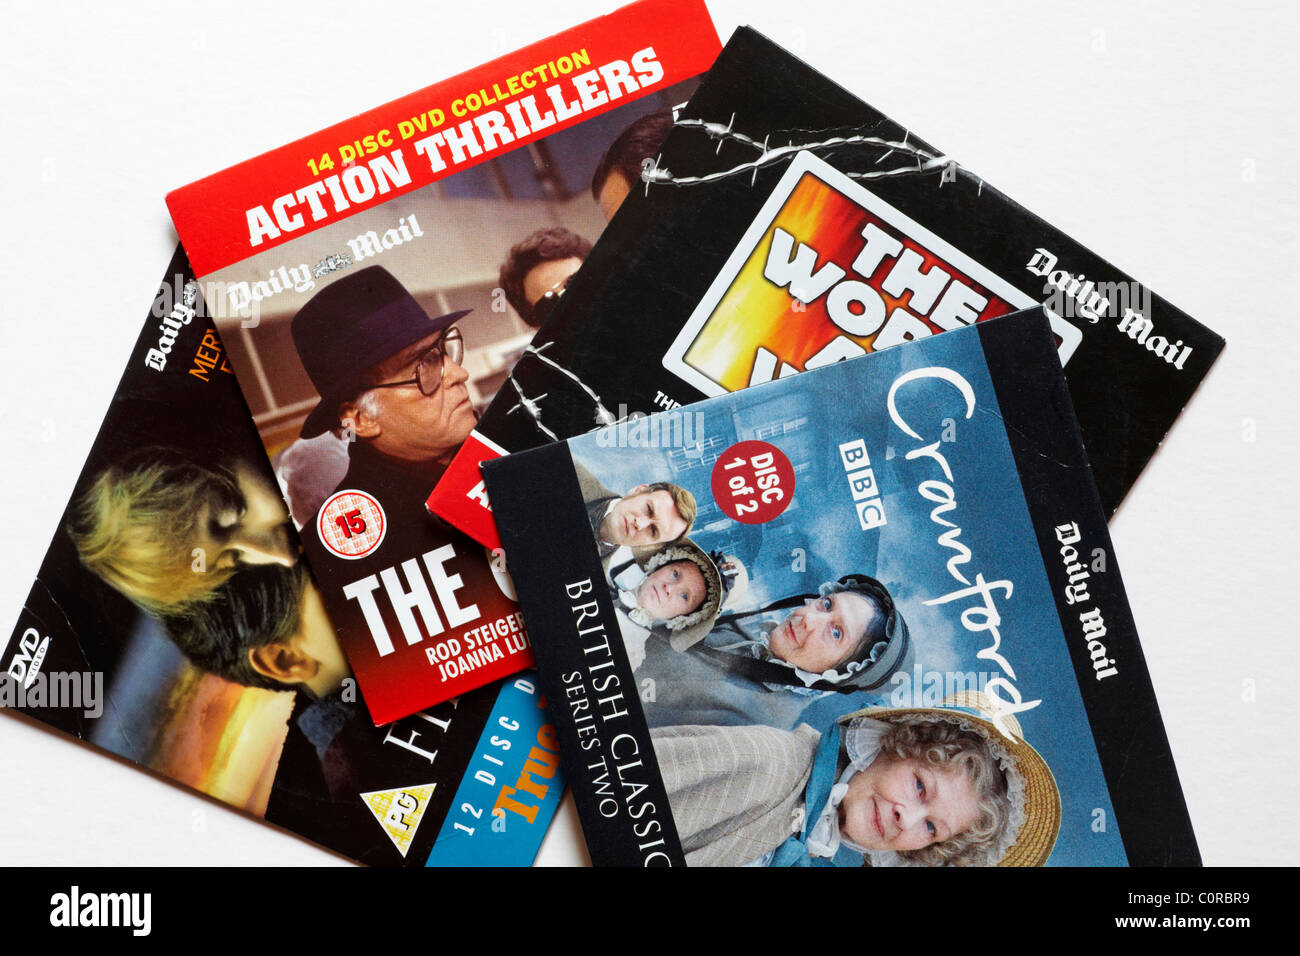 Selection of free DVDS given away with the Daily Mail set on white background - Stock Image